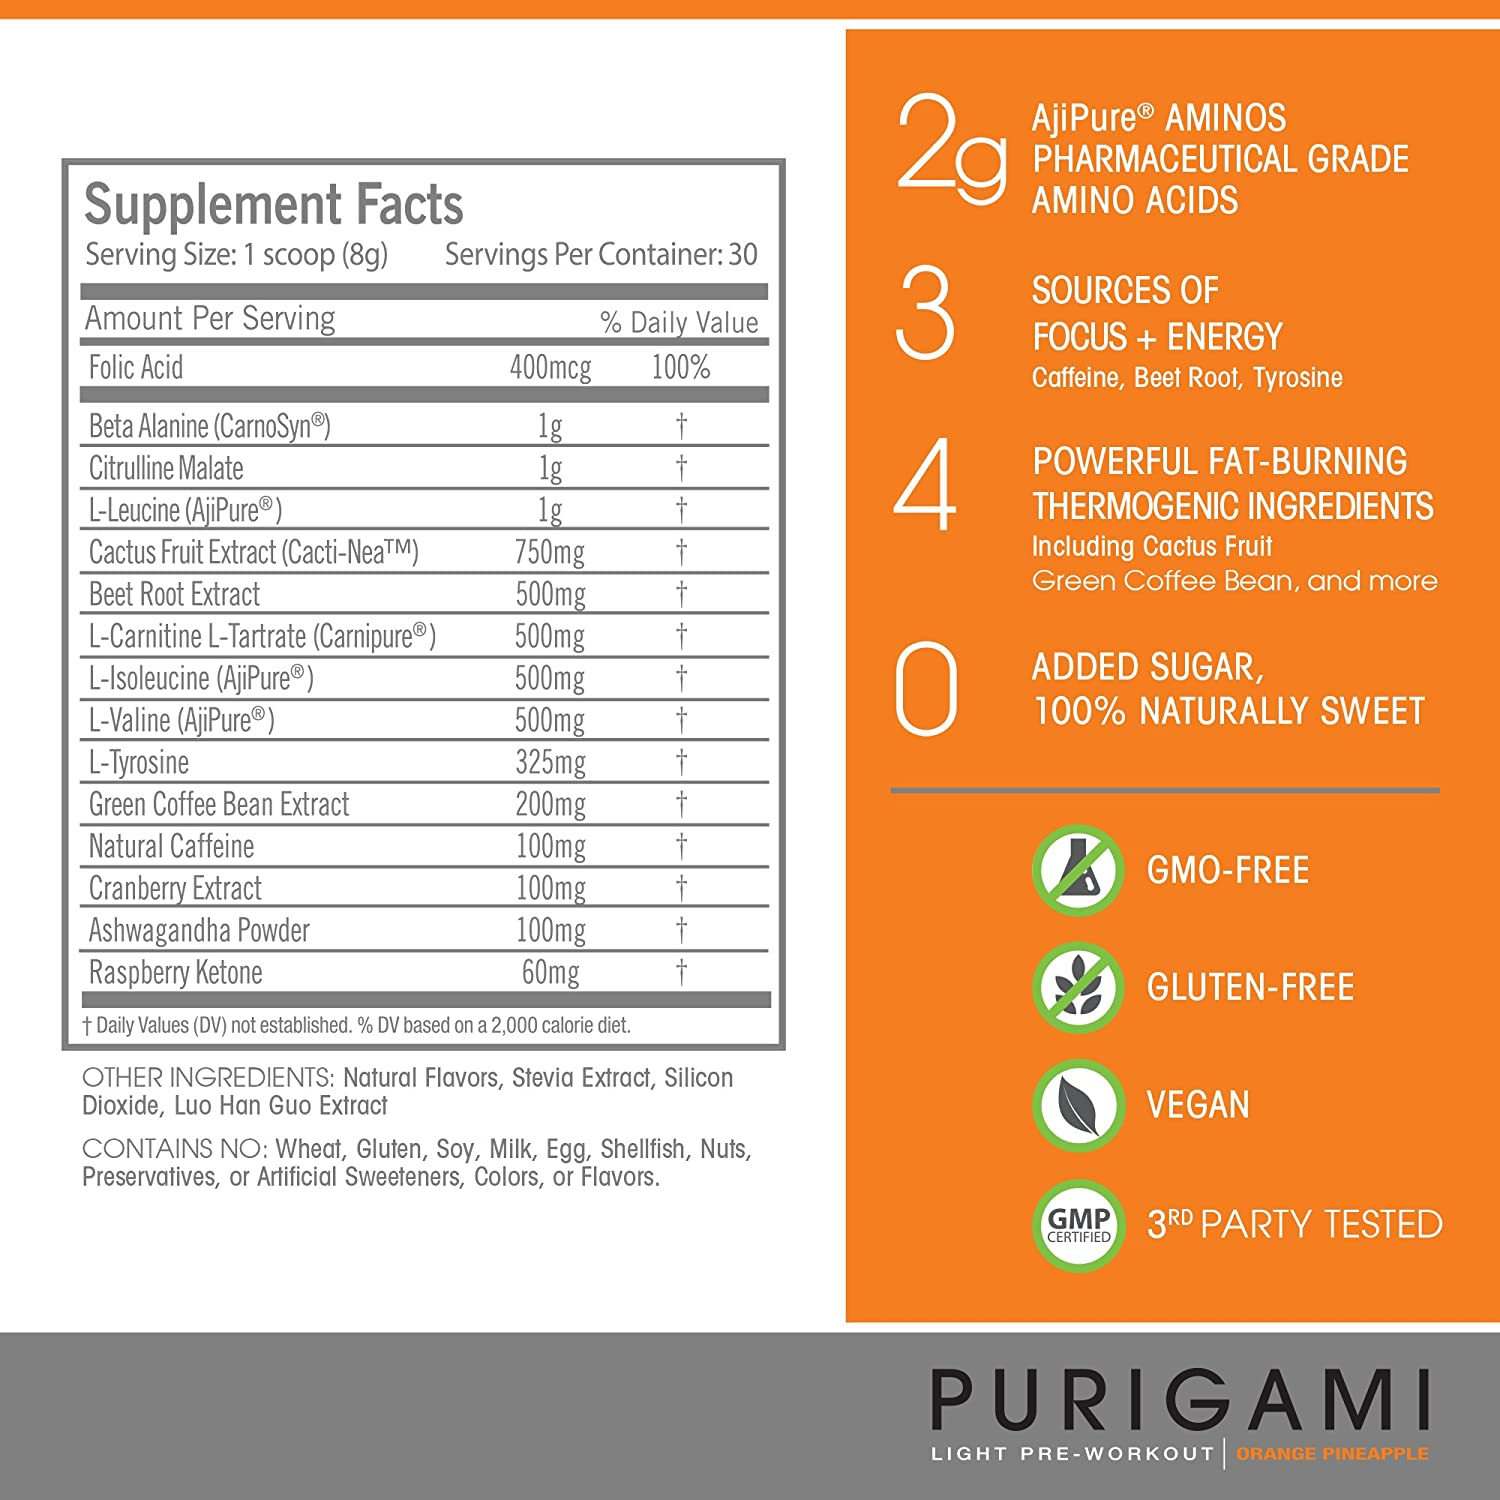 Purigami Natural Light Pre-Workout Powder, Orange Pineapple Flavor and Energy Boosting Supplement – Fat Burner, Vegan, Non-GMO Gluten Free to Improve Workouts and Fitness – 30 Servings